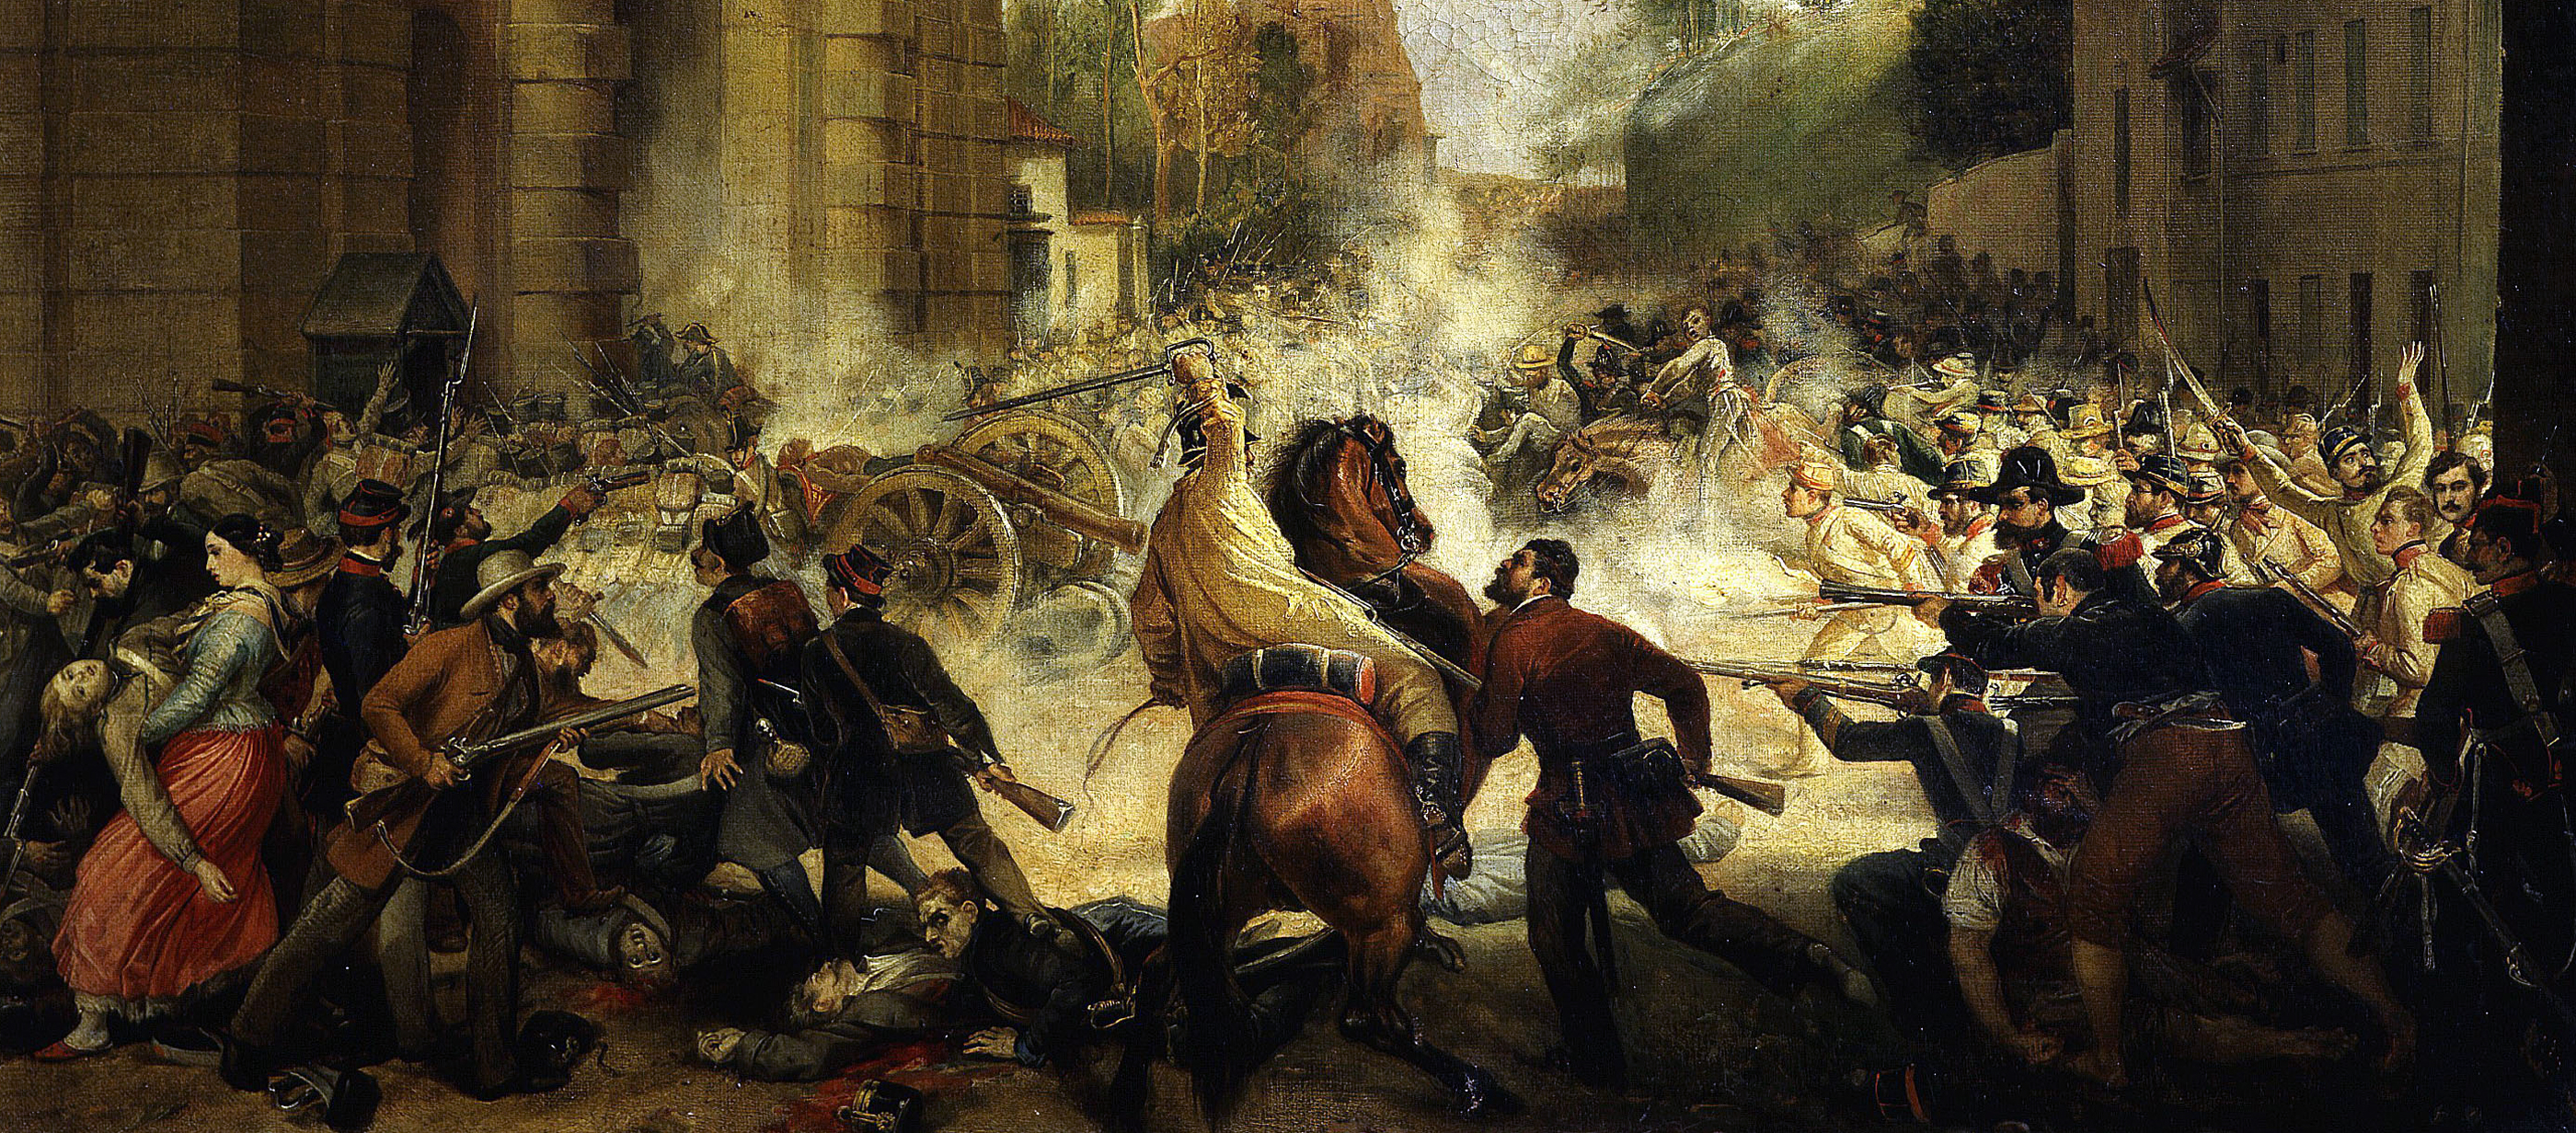 The Expulsion of the Austrians from the Porta Galleria, August 8, 1848, by Antonio Muzzi, c. 1849.